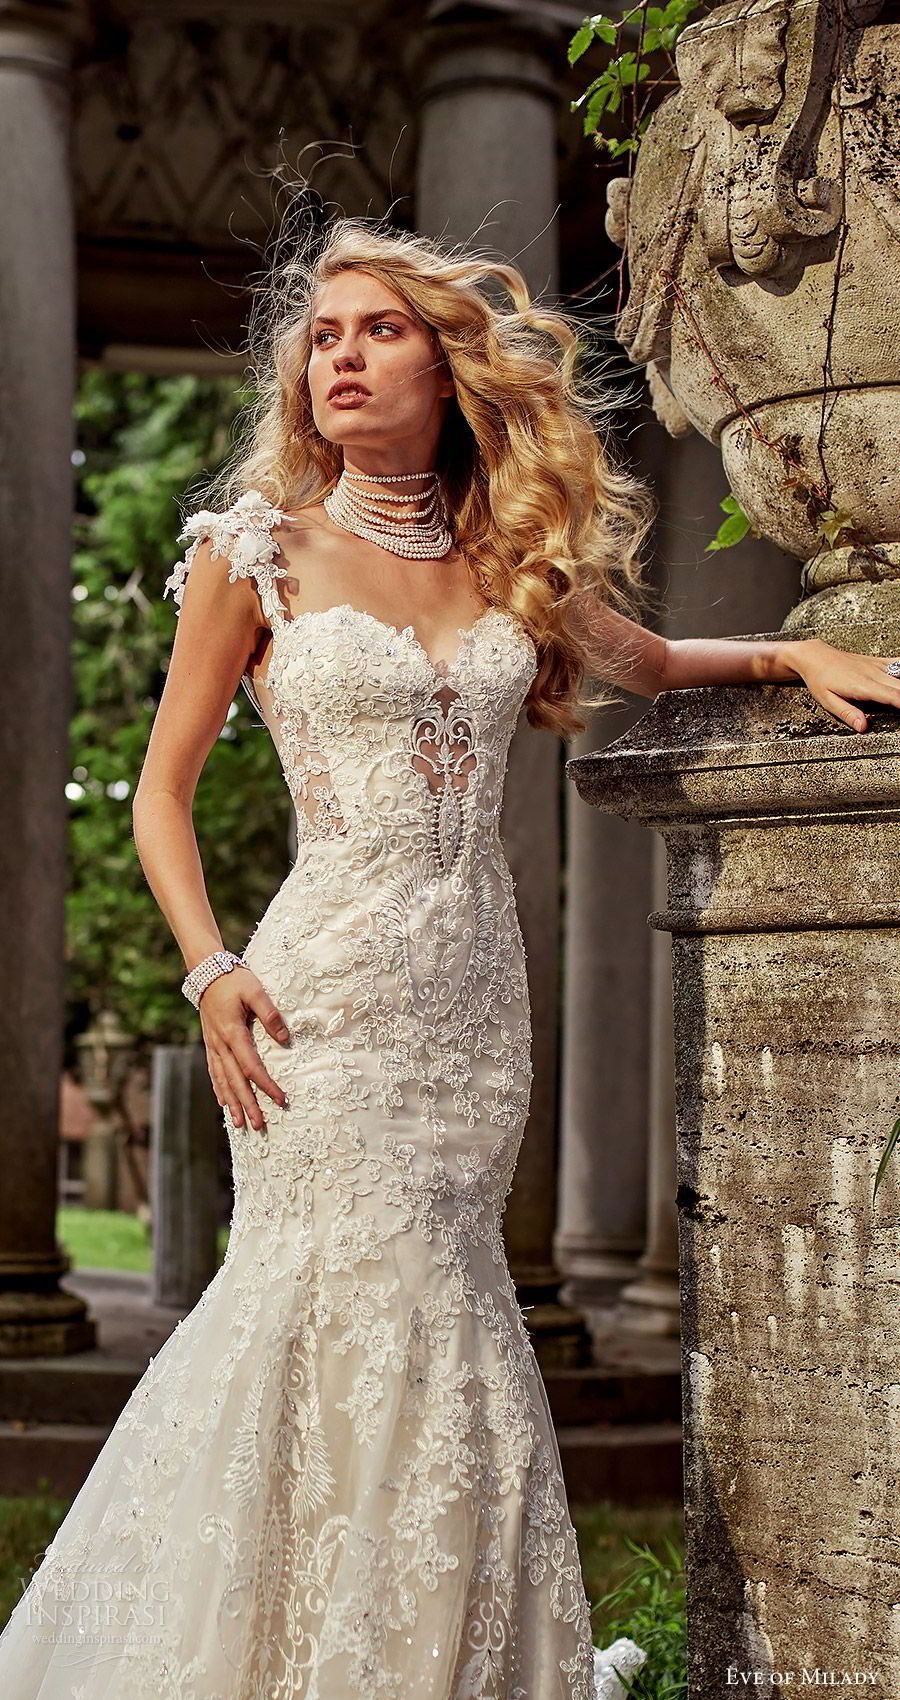 036d395ed5 eve of milady bridal spring 2018 embellished cap sleeves straps sweetheart  beaded lace mermaid fit flare lace wedding dress (1605) zv chapel train  glam ...